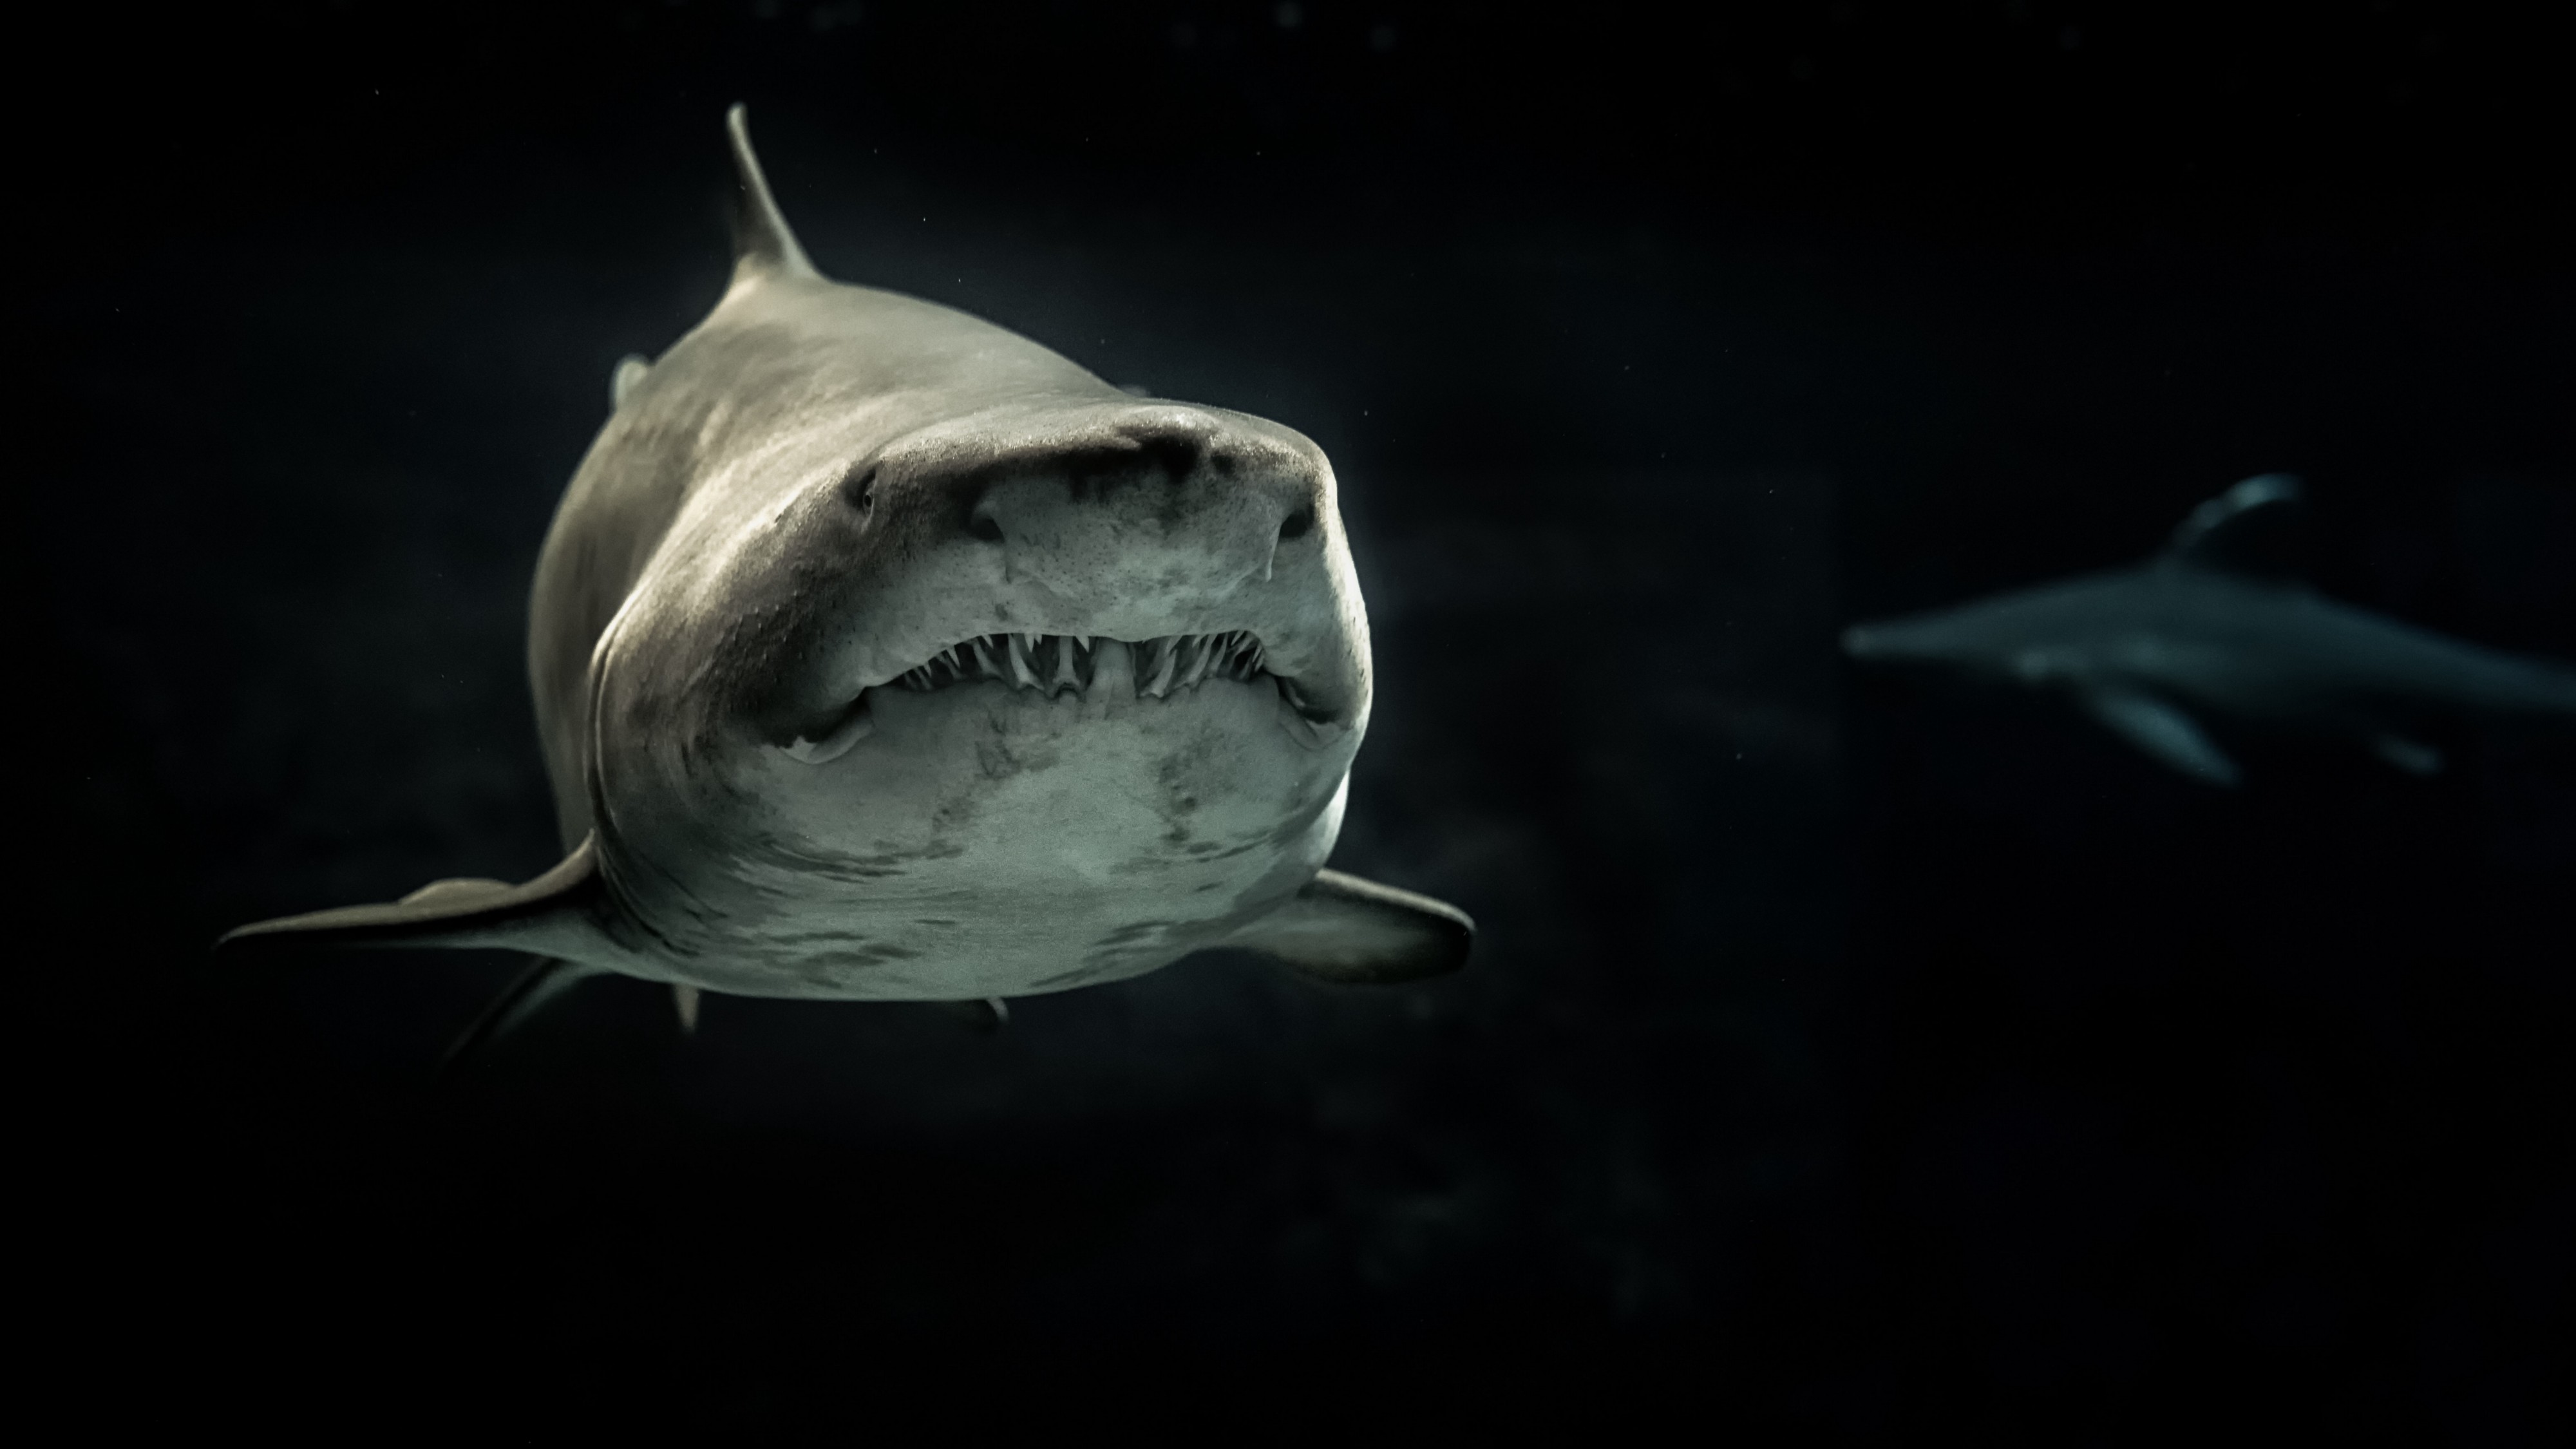 A looming shark grimaces at the camera as another swims behind it in the distance, masked by shadow.